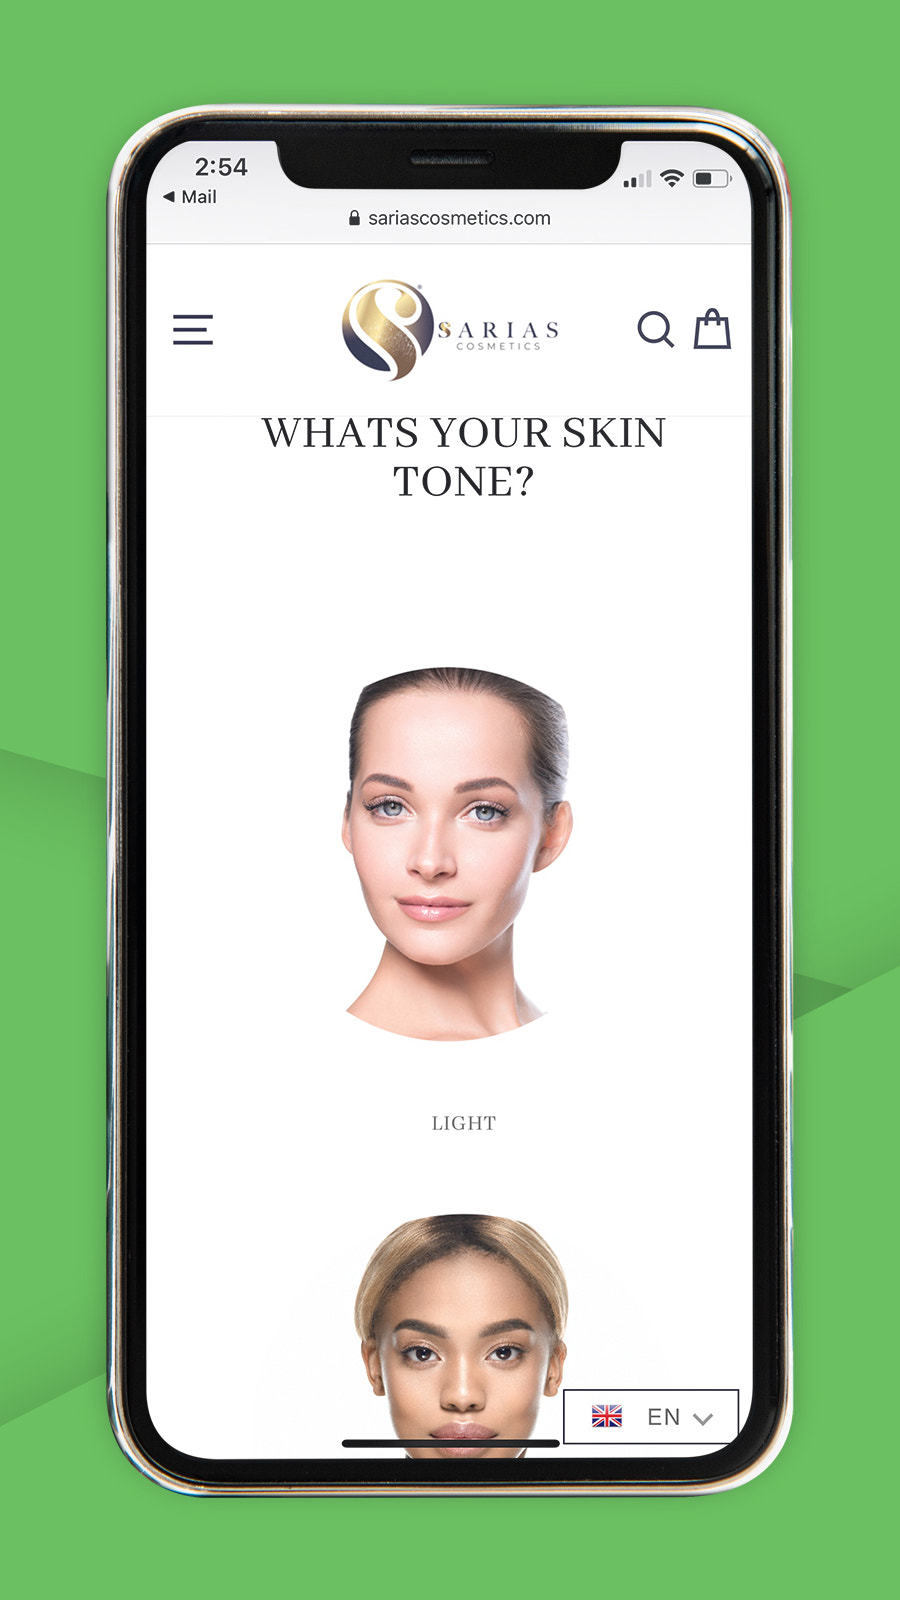 Beauty product finder, quiz and product recommendations